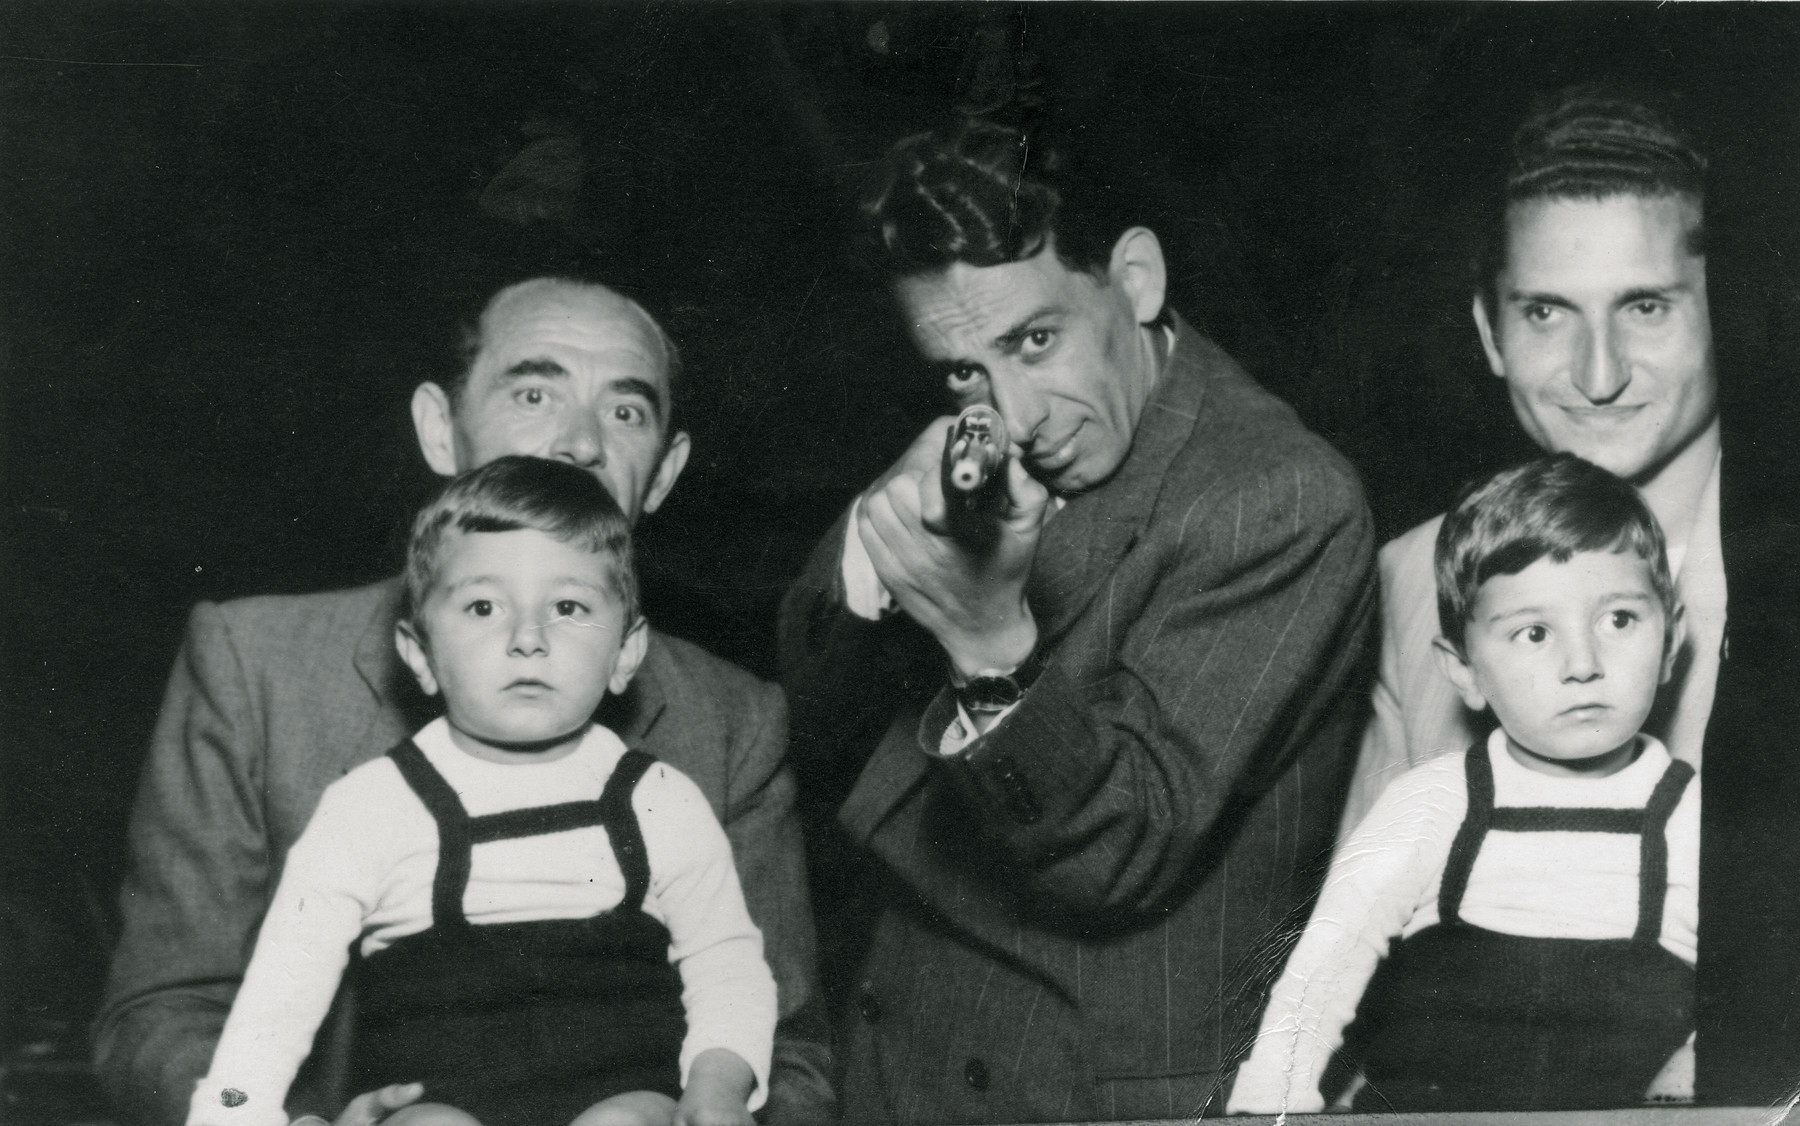 Group portrait of Uncle Chaim Finci, his twin nephews and two other men..   Chaim Finci is in the center pointing a gun at the camera., the twins, Shmuel and Avraham are on the laps of the other two men.